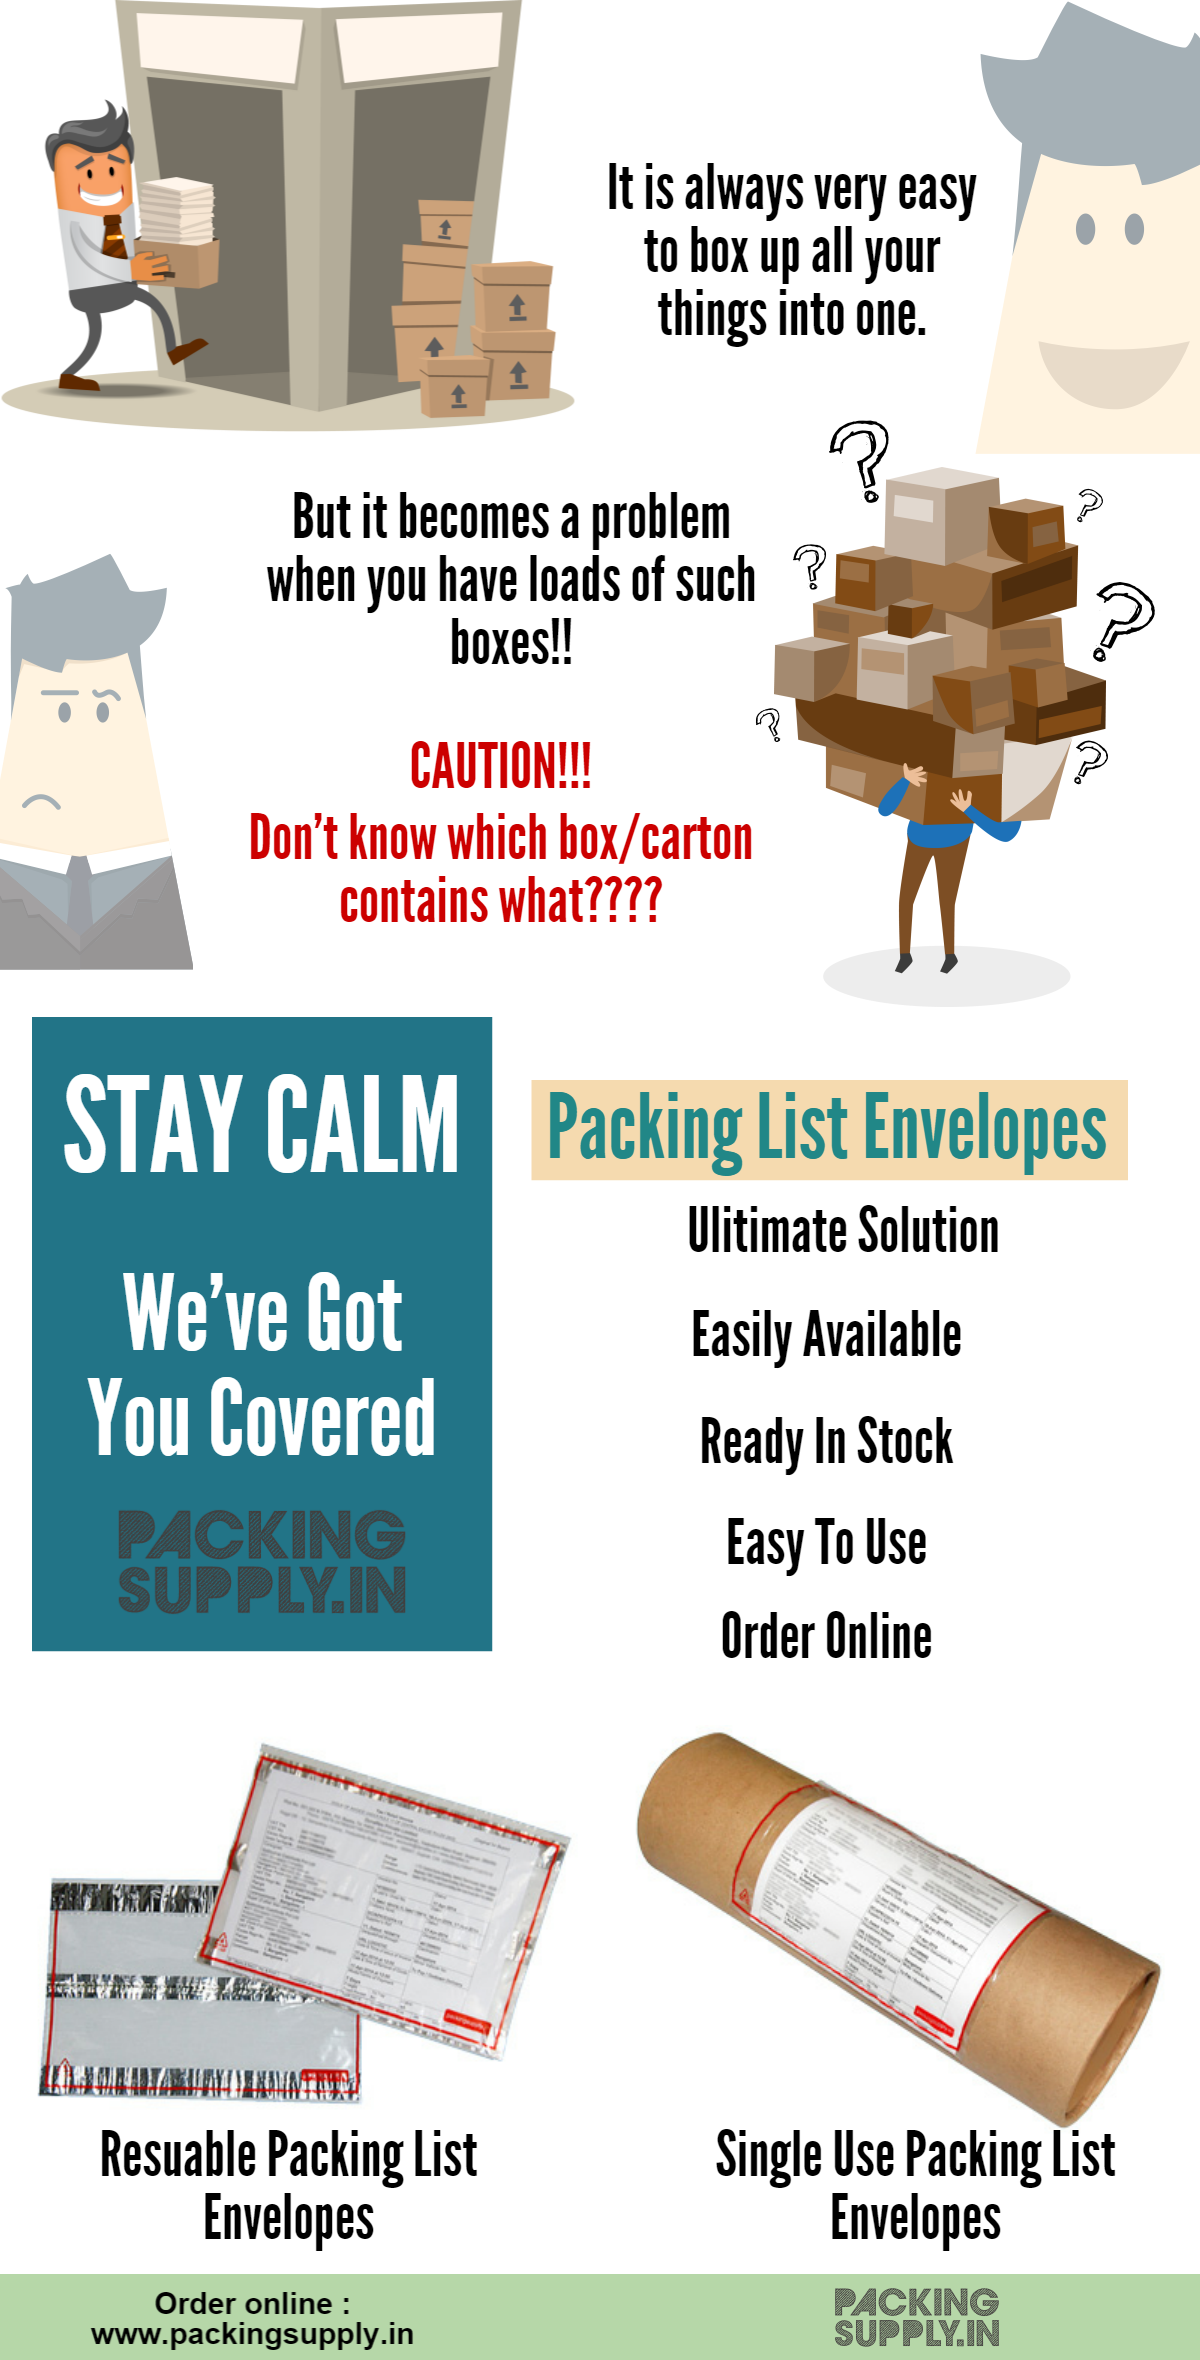 use packing list envelopes and stay calm small business bonfire